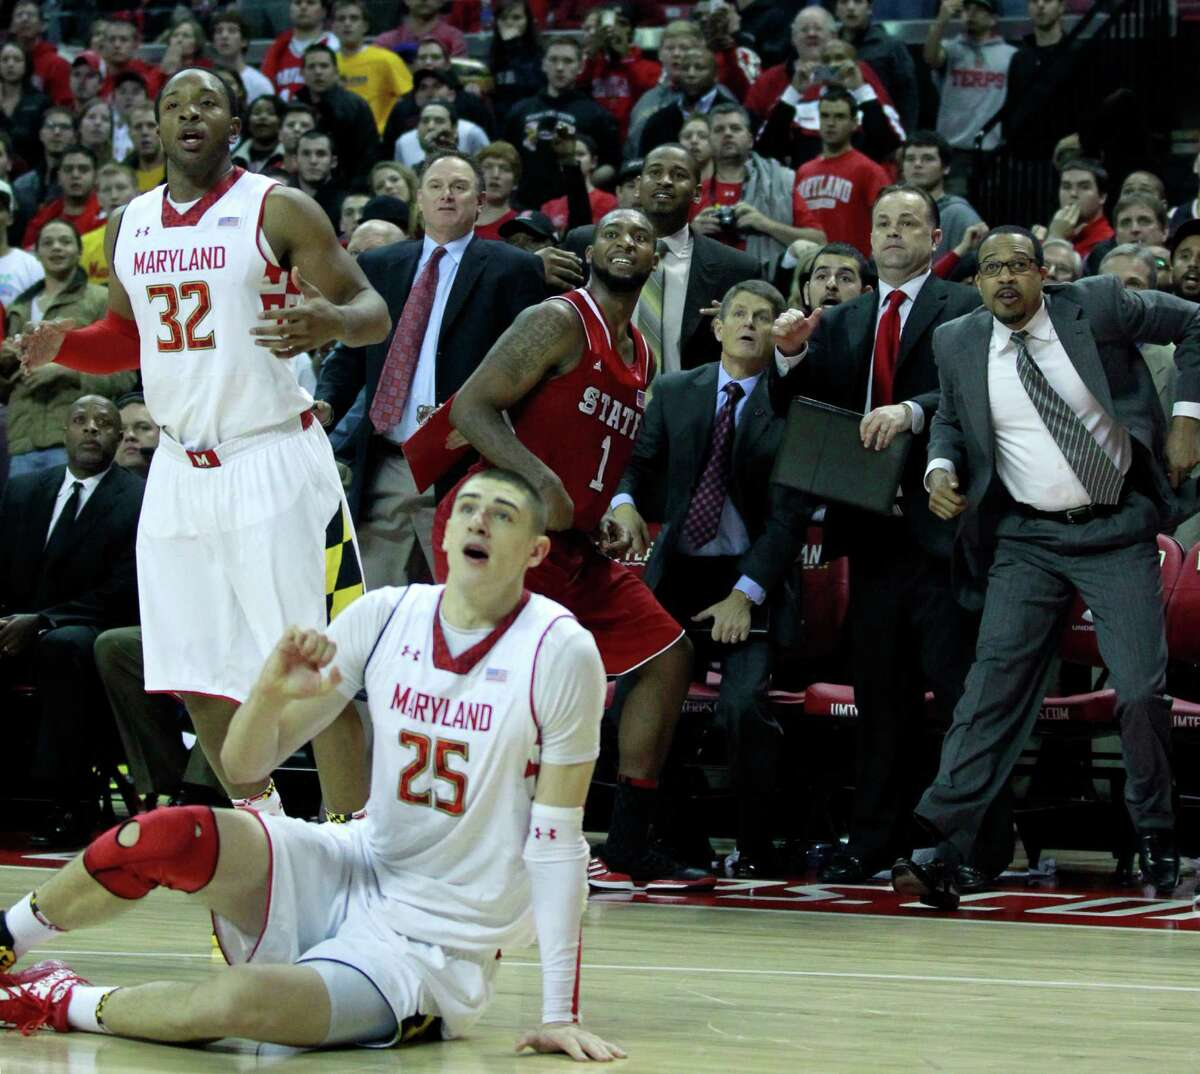 All eyes are on the last-second shot by North Carolina State's Richard Howell (1), which failed to fall, allowing Maryland to escape with a one-point win.